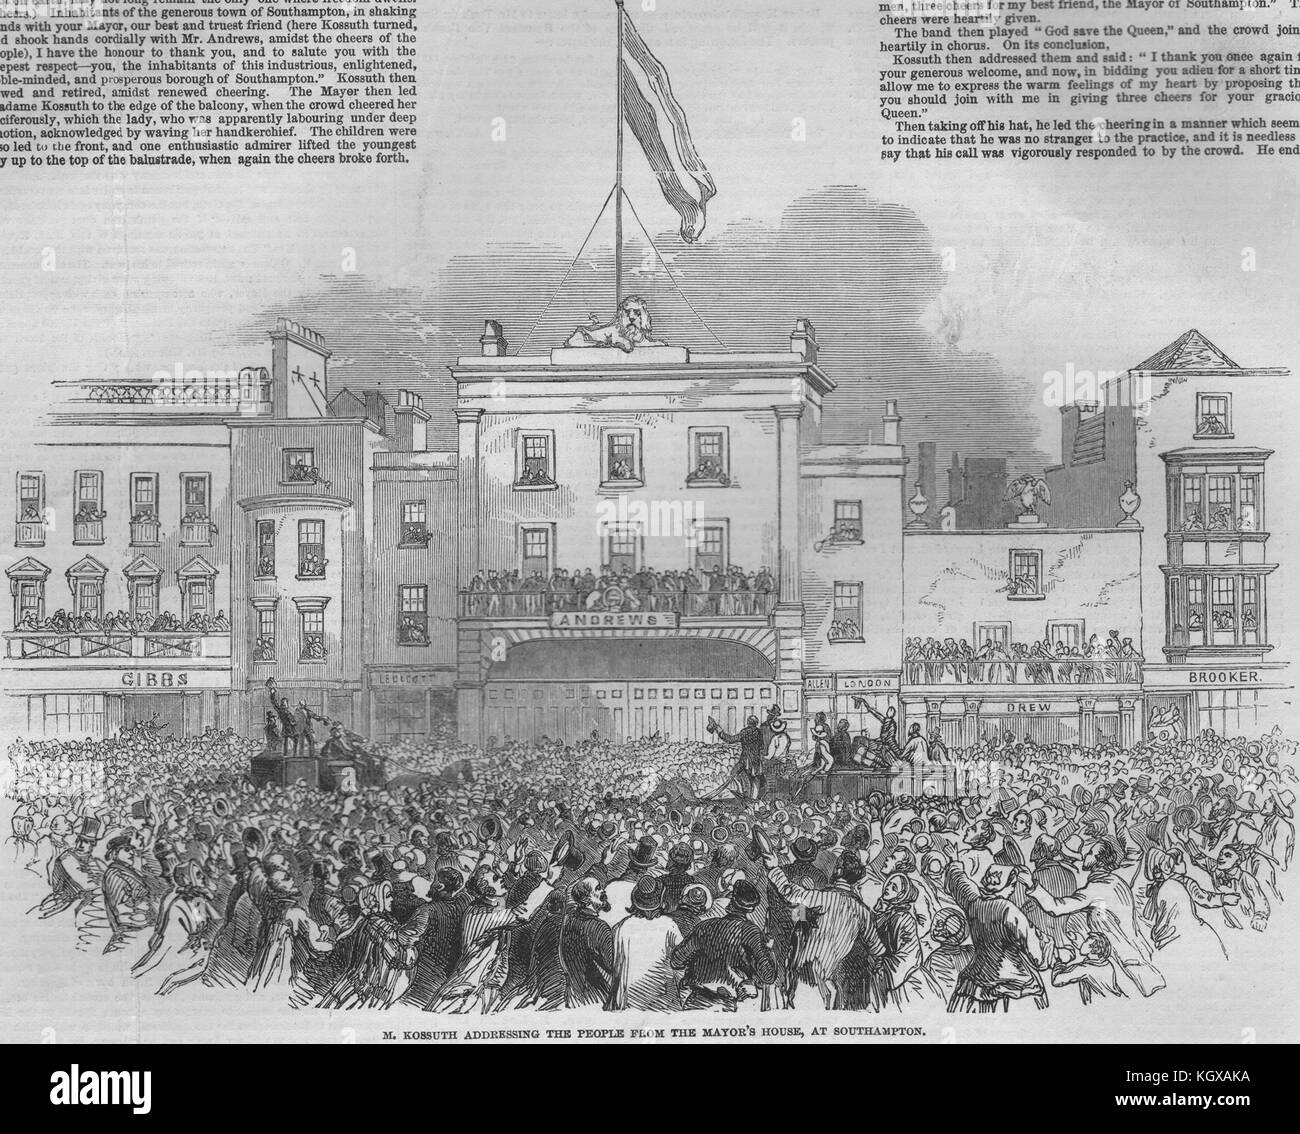 M. Kossuth addressing the people from the Mayor's at Southampton 1851. The Illustrated London News - Stock Image